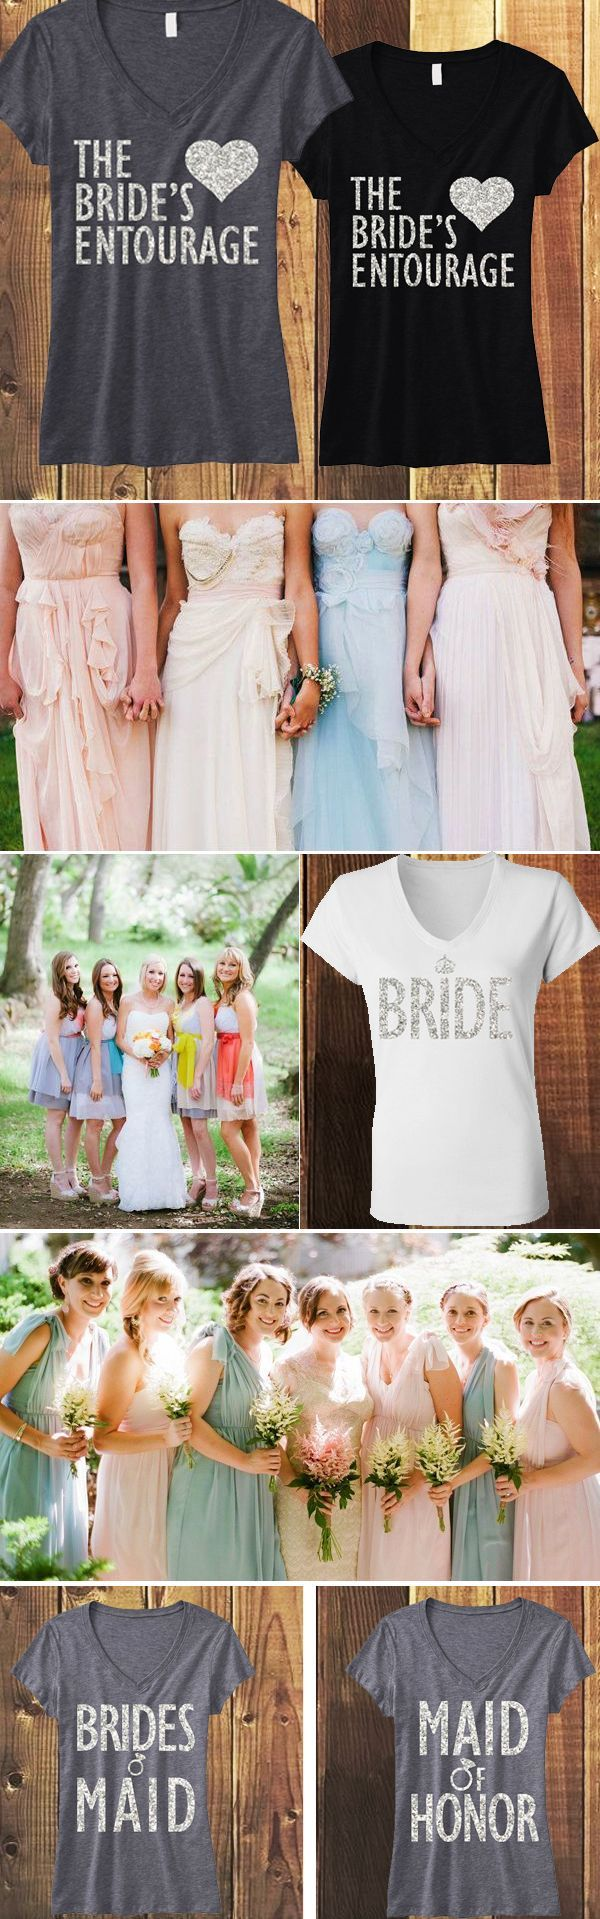 Glitter Wedding shirts for the Bridesmaids, Bride, Maid of Honor, and more! Mix and Match to fit your Bridal Party. Click here to buy http://nobullwoman-apparel.com/collections/bridal-shirt-packages/products/bridal-wedding-5-shirts-15-off-bundle